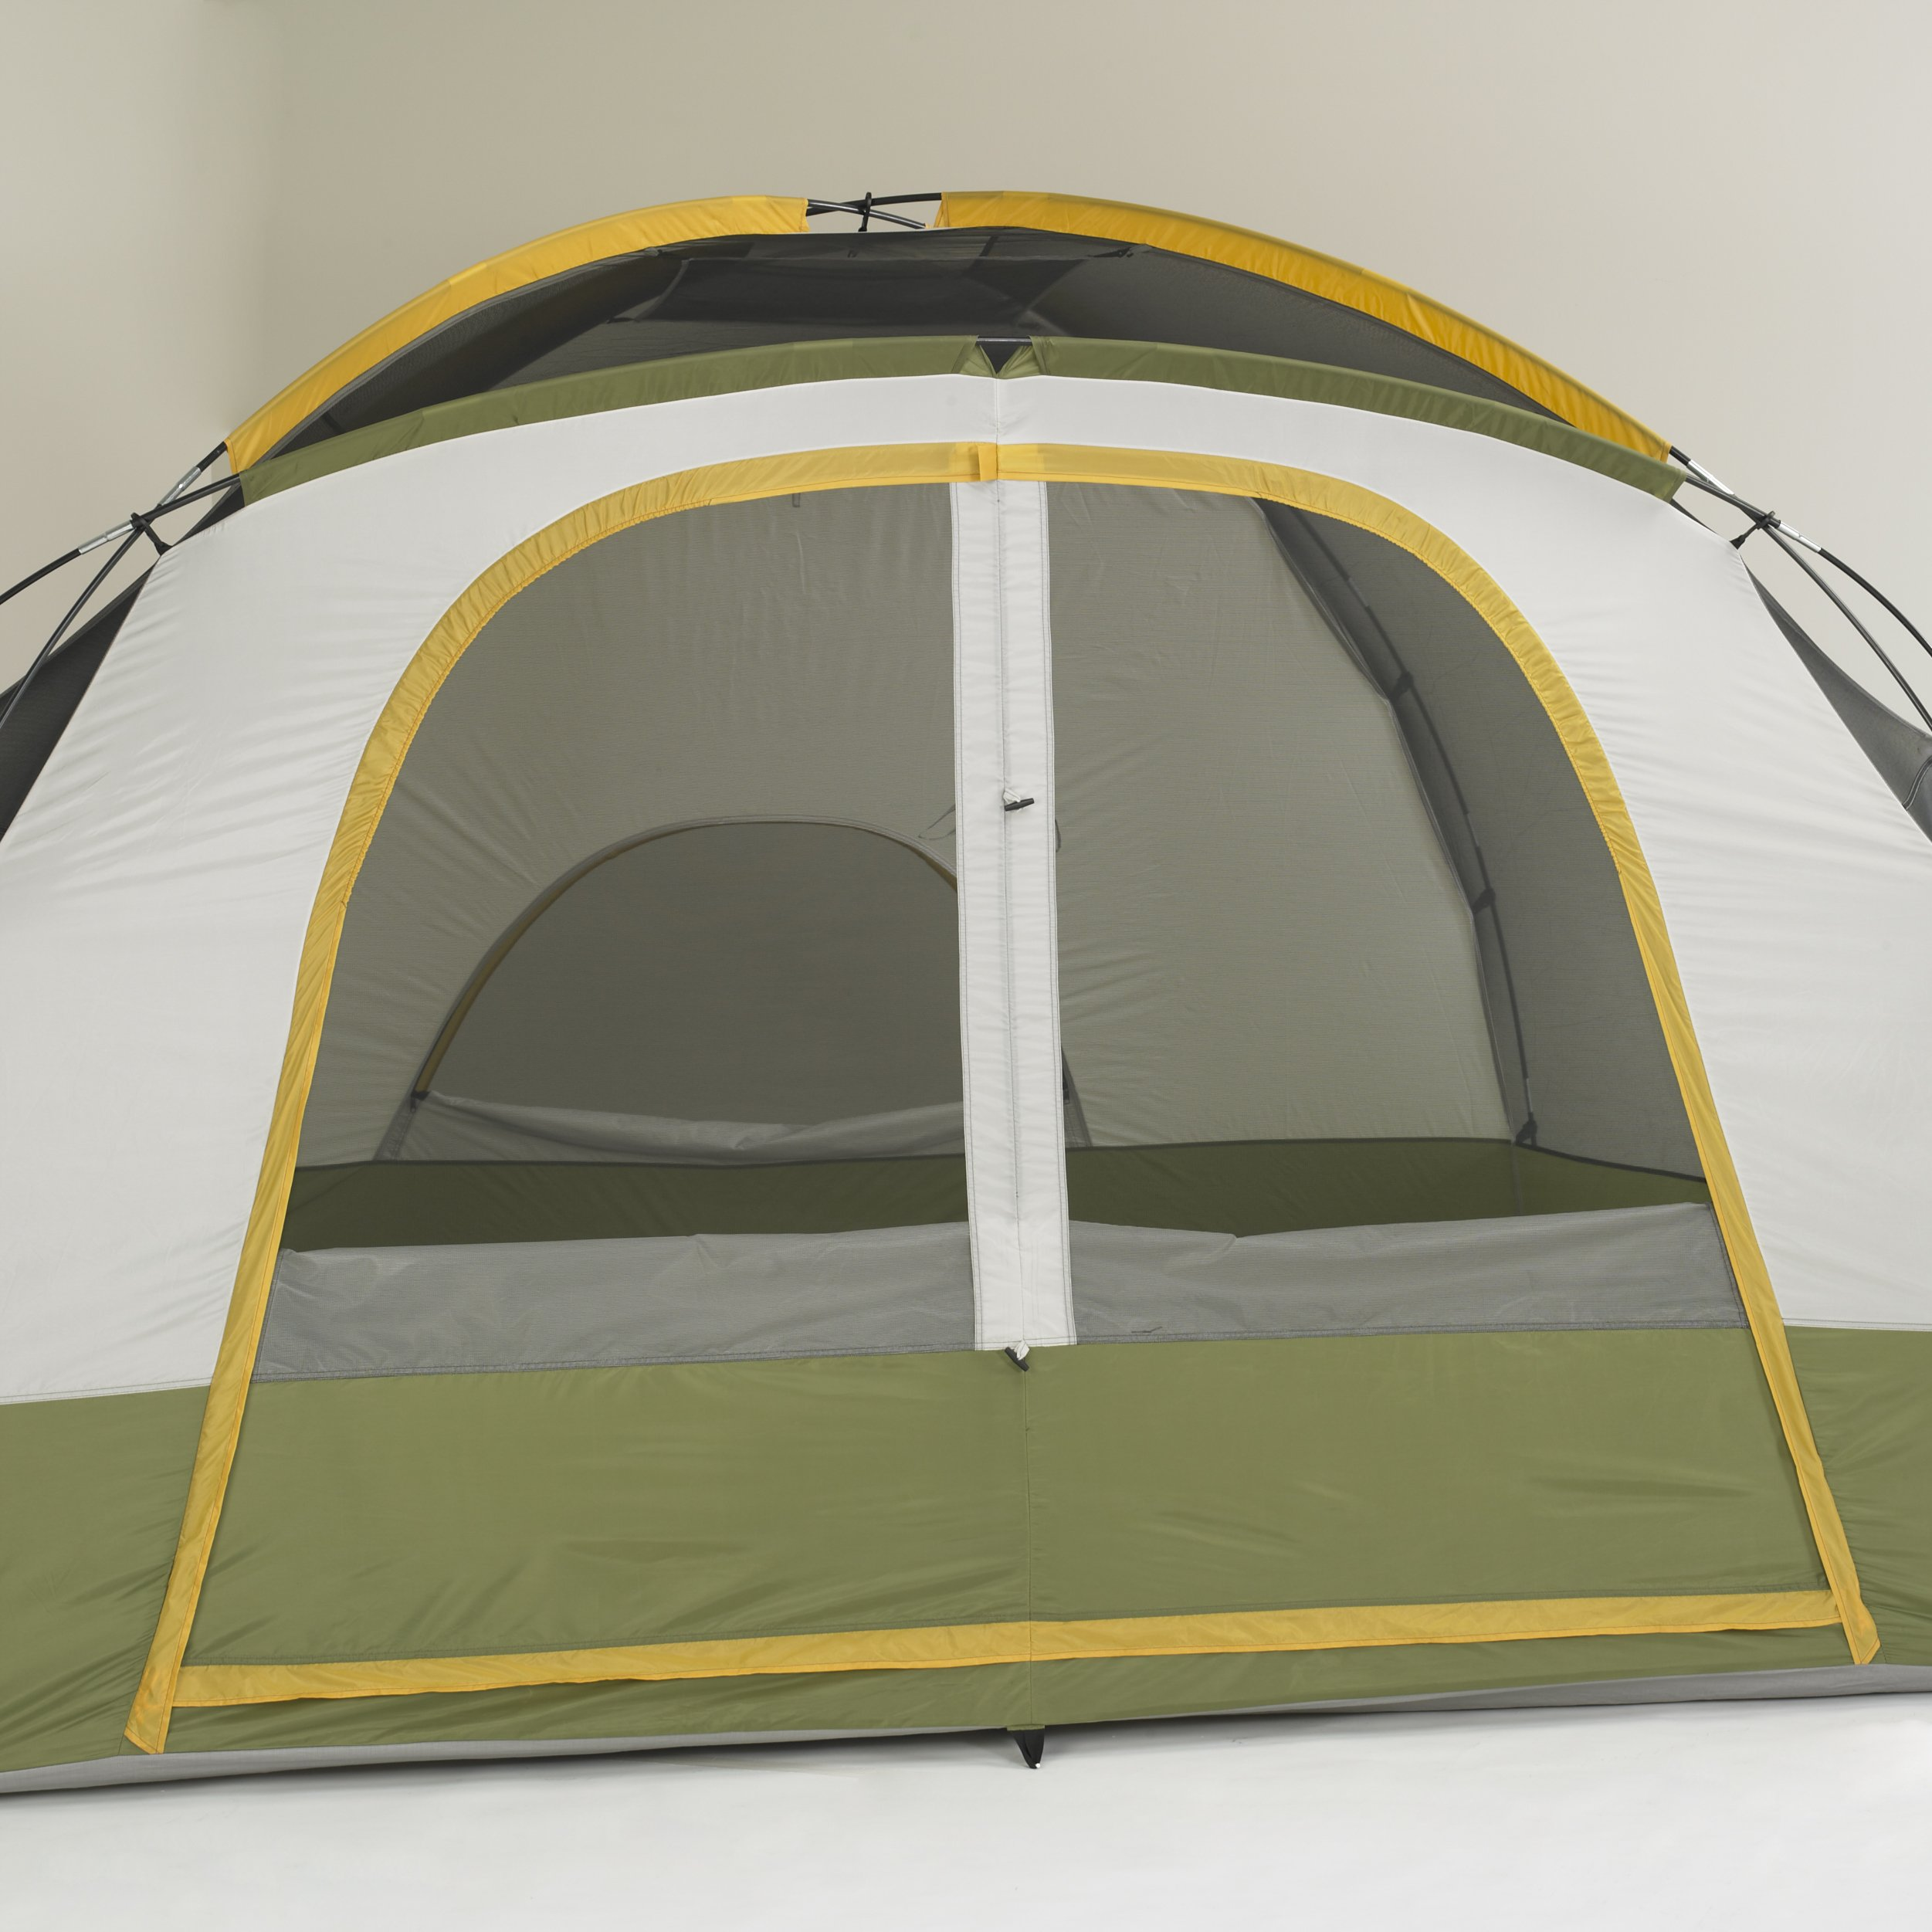 Wenzel Evergreen Tent - 6 Person by Wenzel (Image #5)